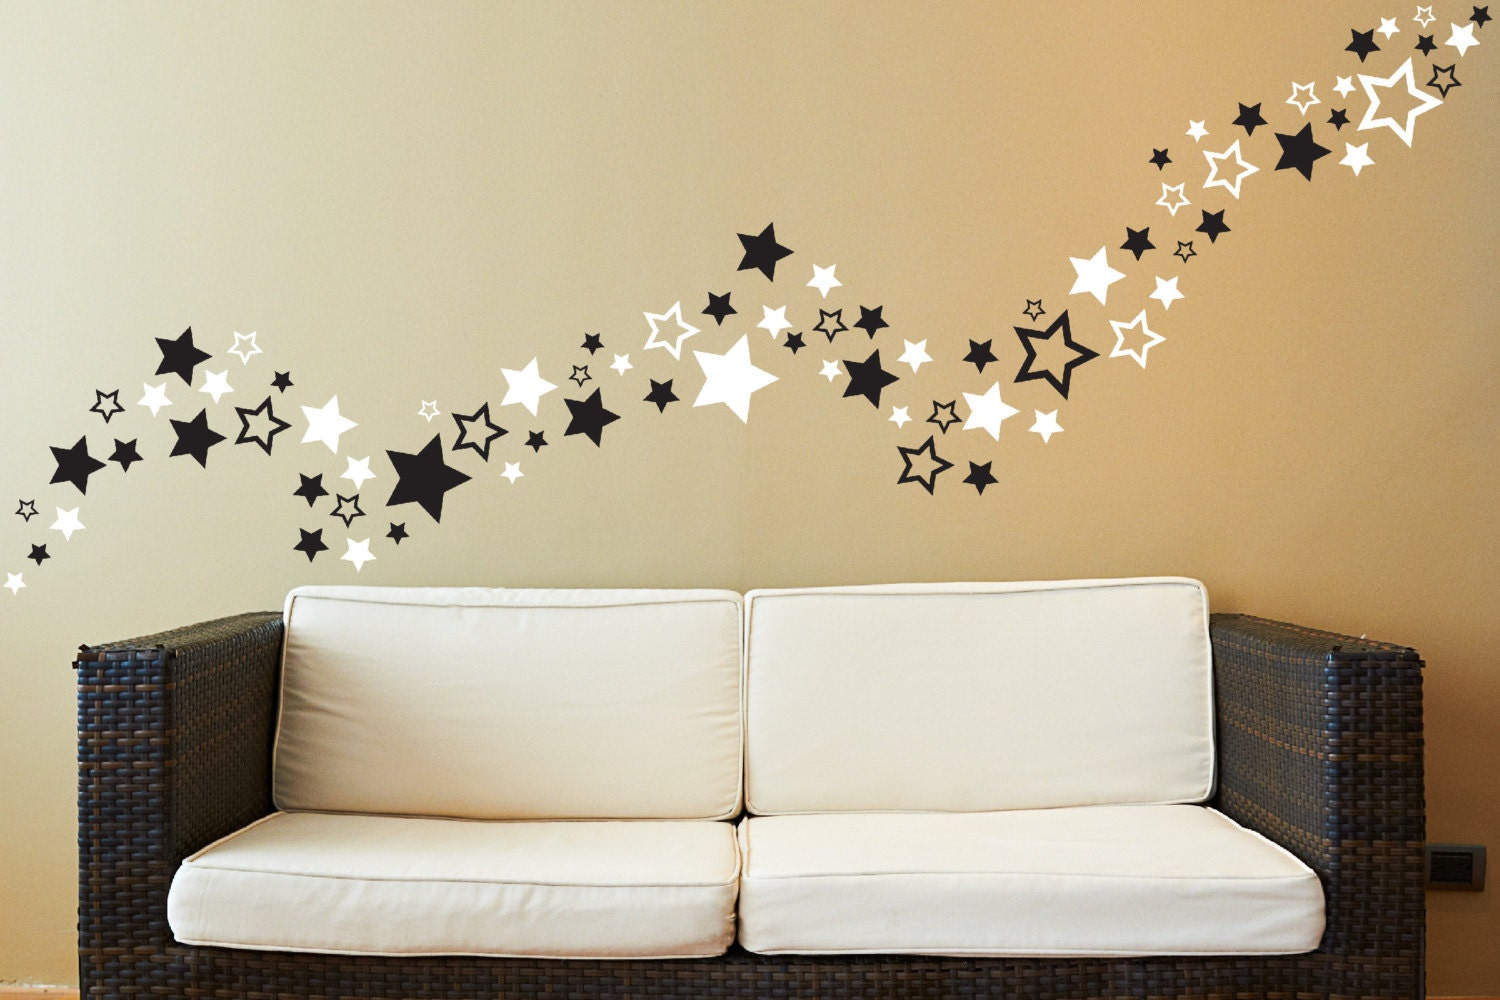 Metal Star Wall Decor Michellelisa Designs Metal Star Wall Decor Gold Barn Star Brushed